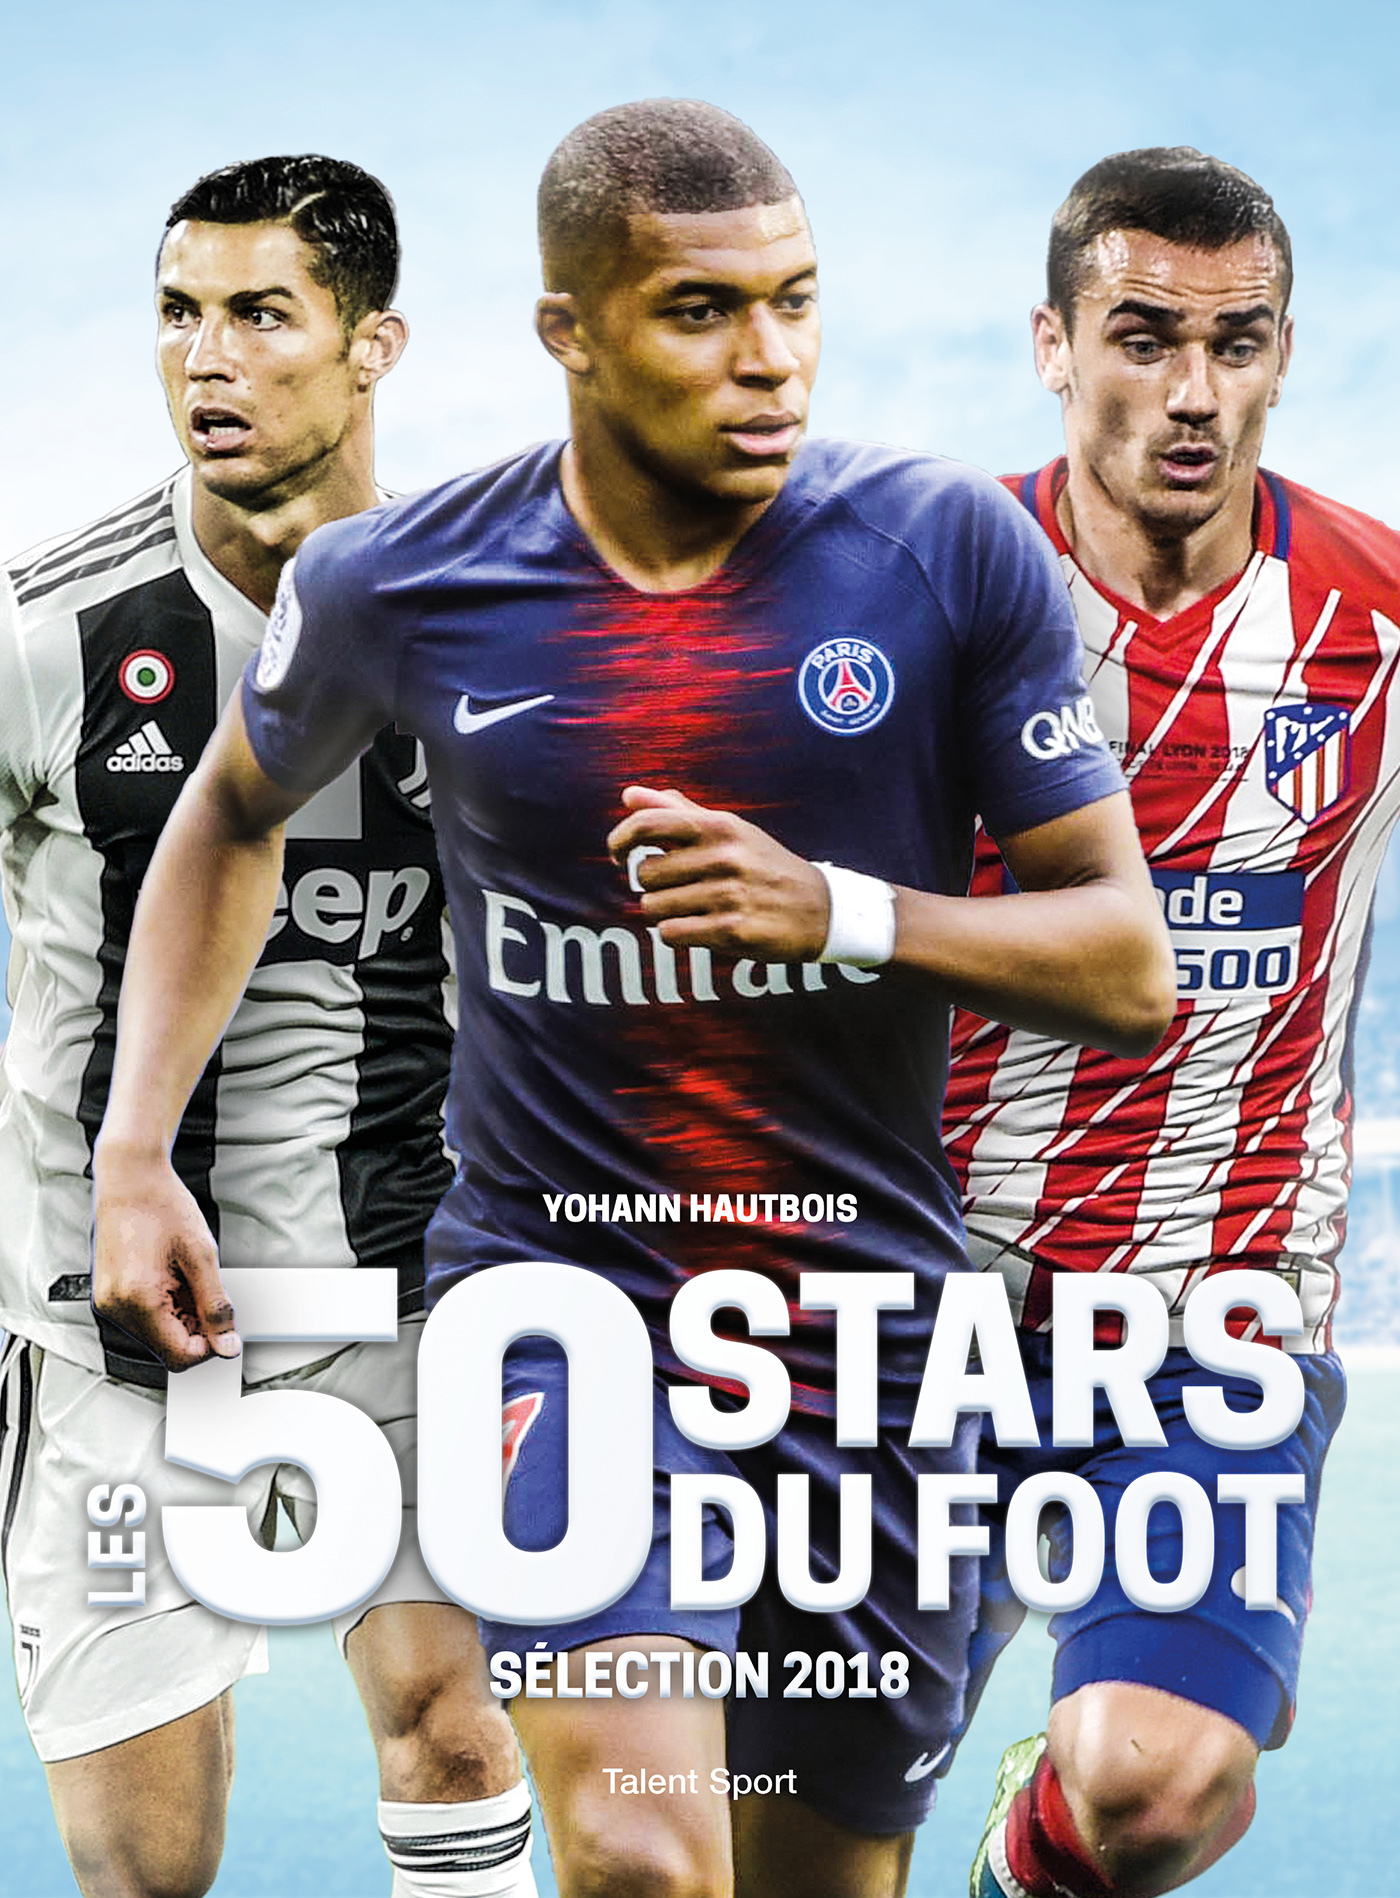 LES 50 STARS DU FOOT - SELECTION 2018